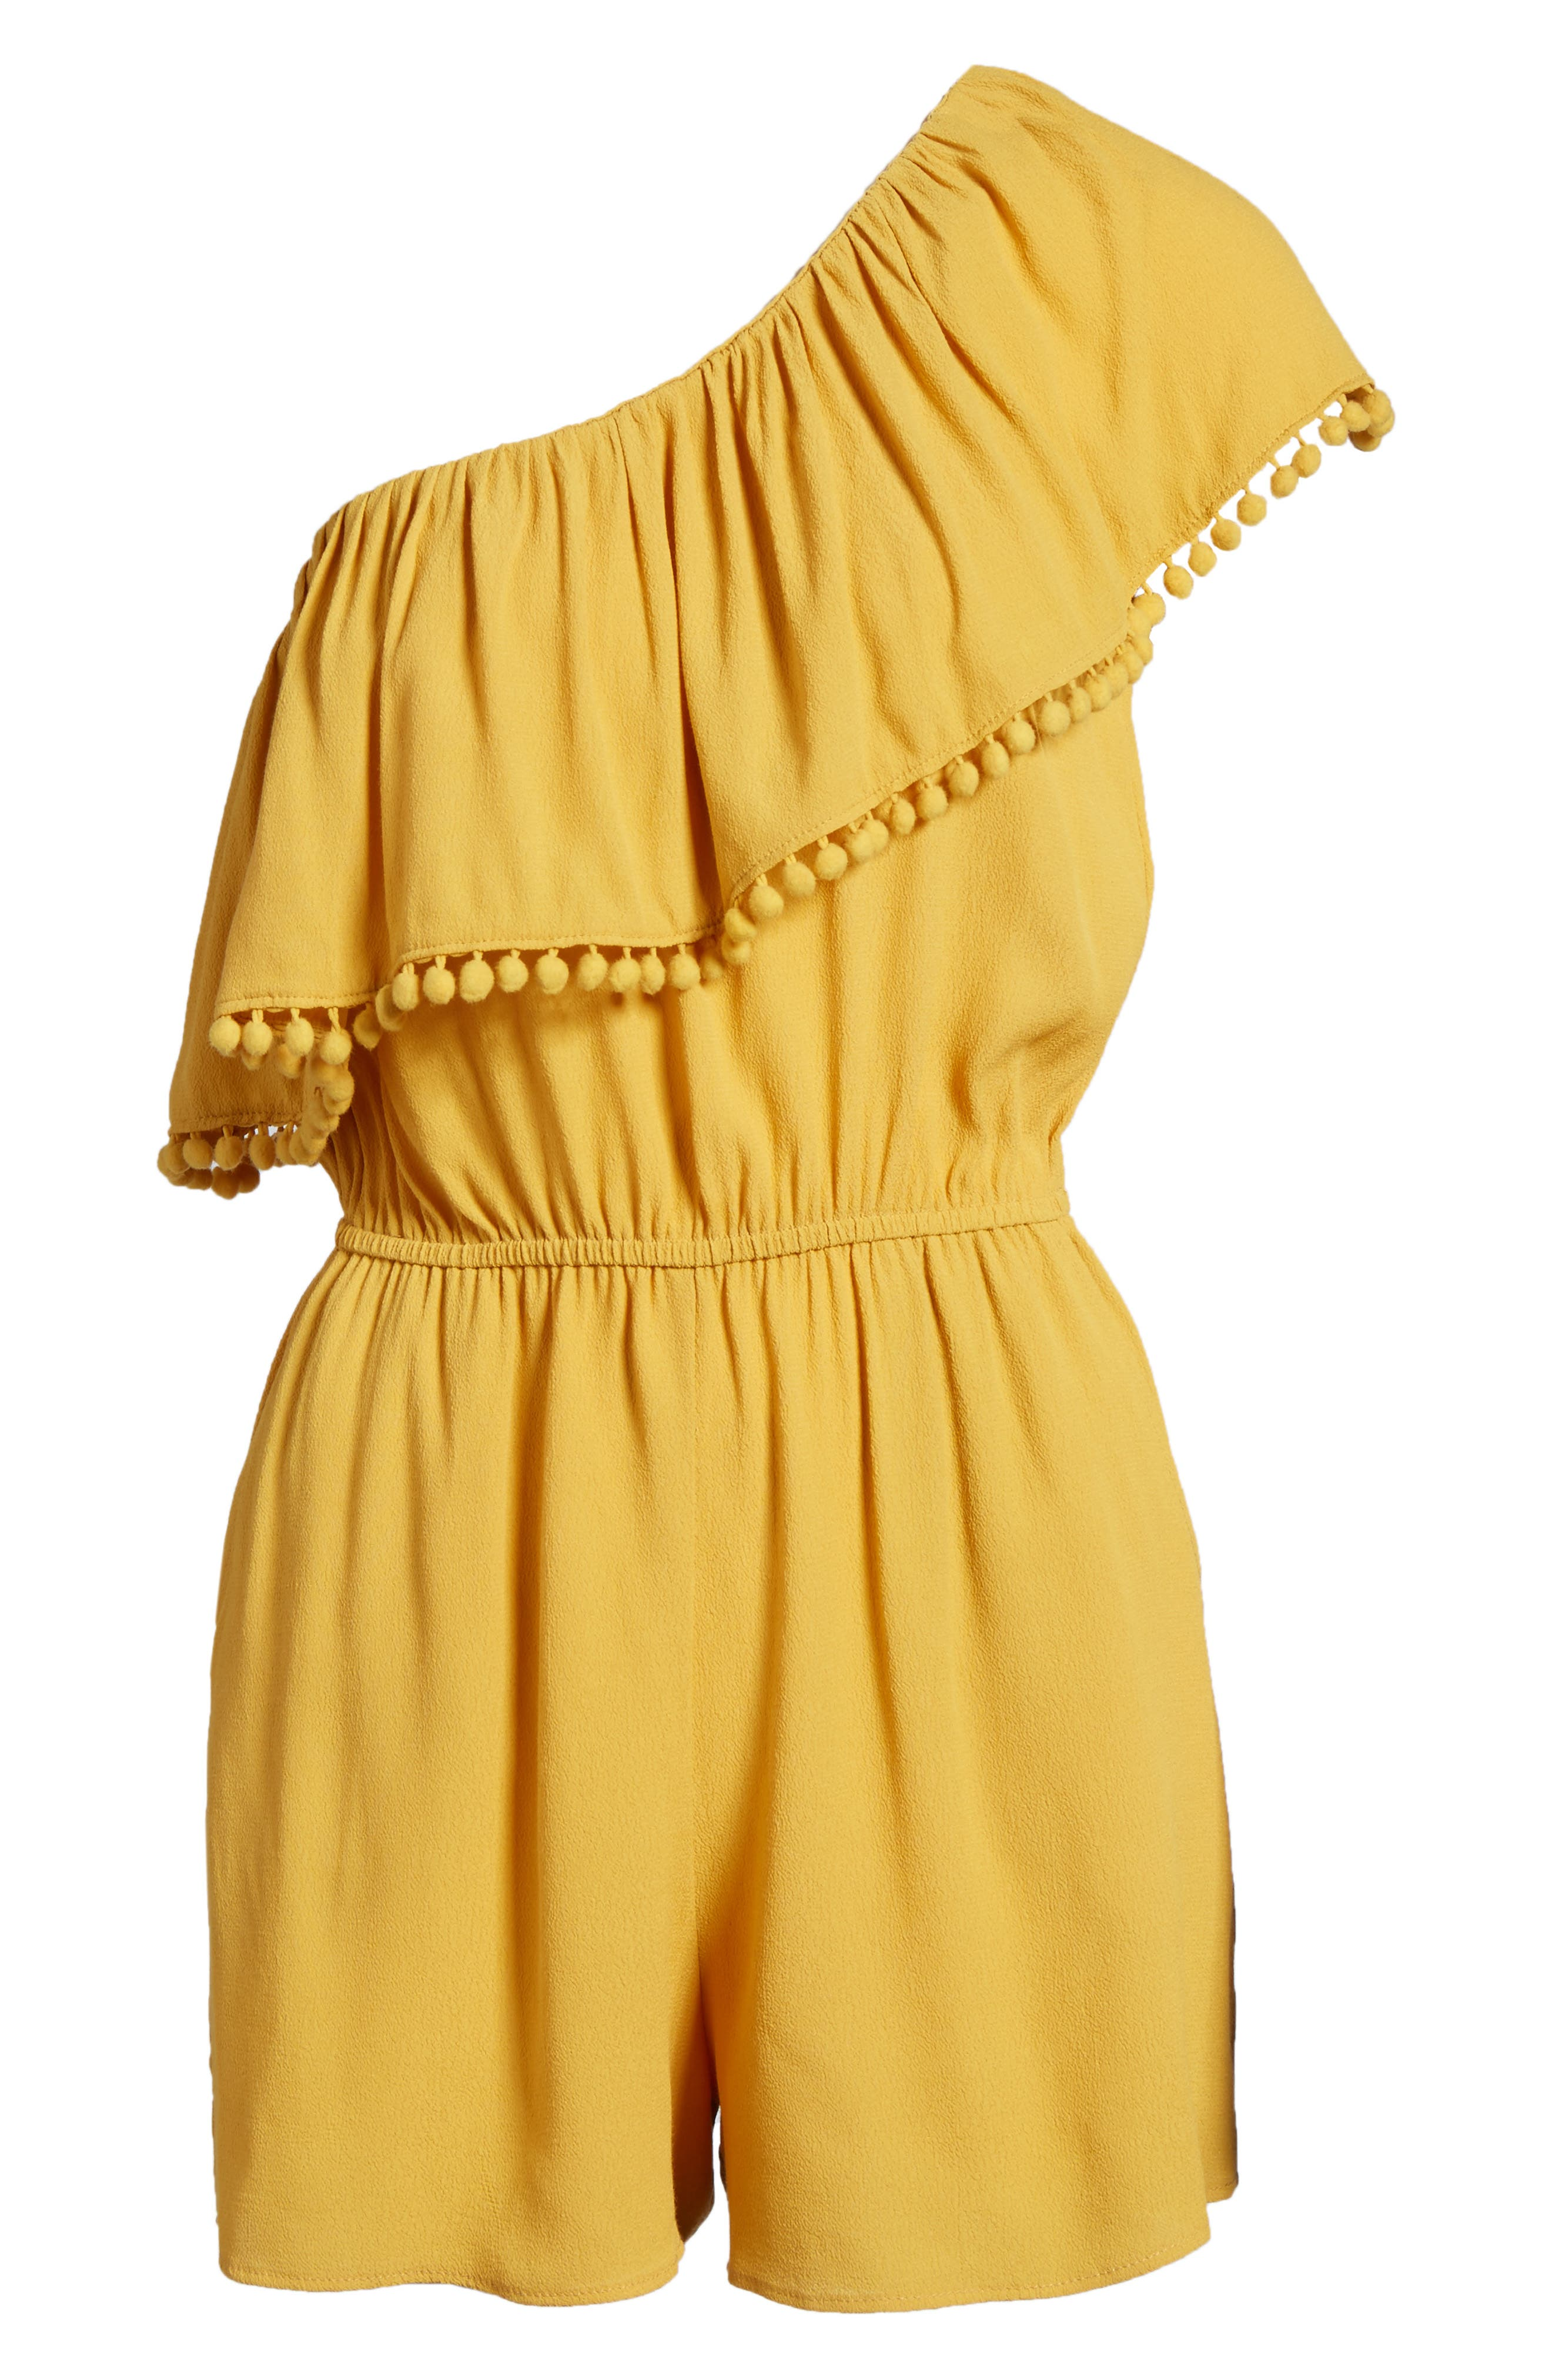 One-Shoulder Ruffle Romper,                             Alternate thumbnail 7, color,                             701